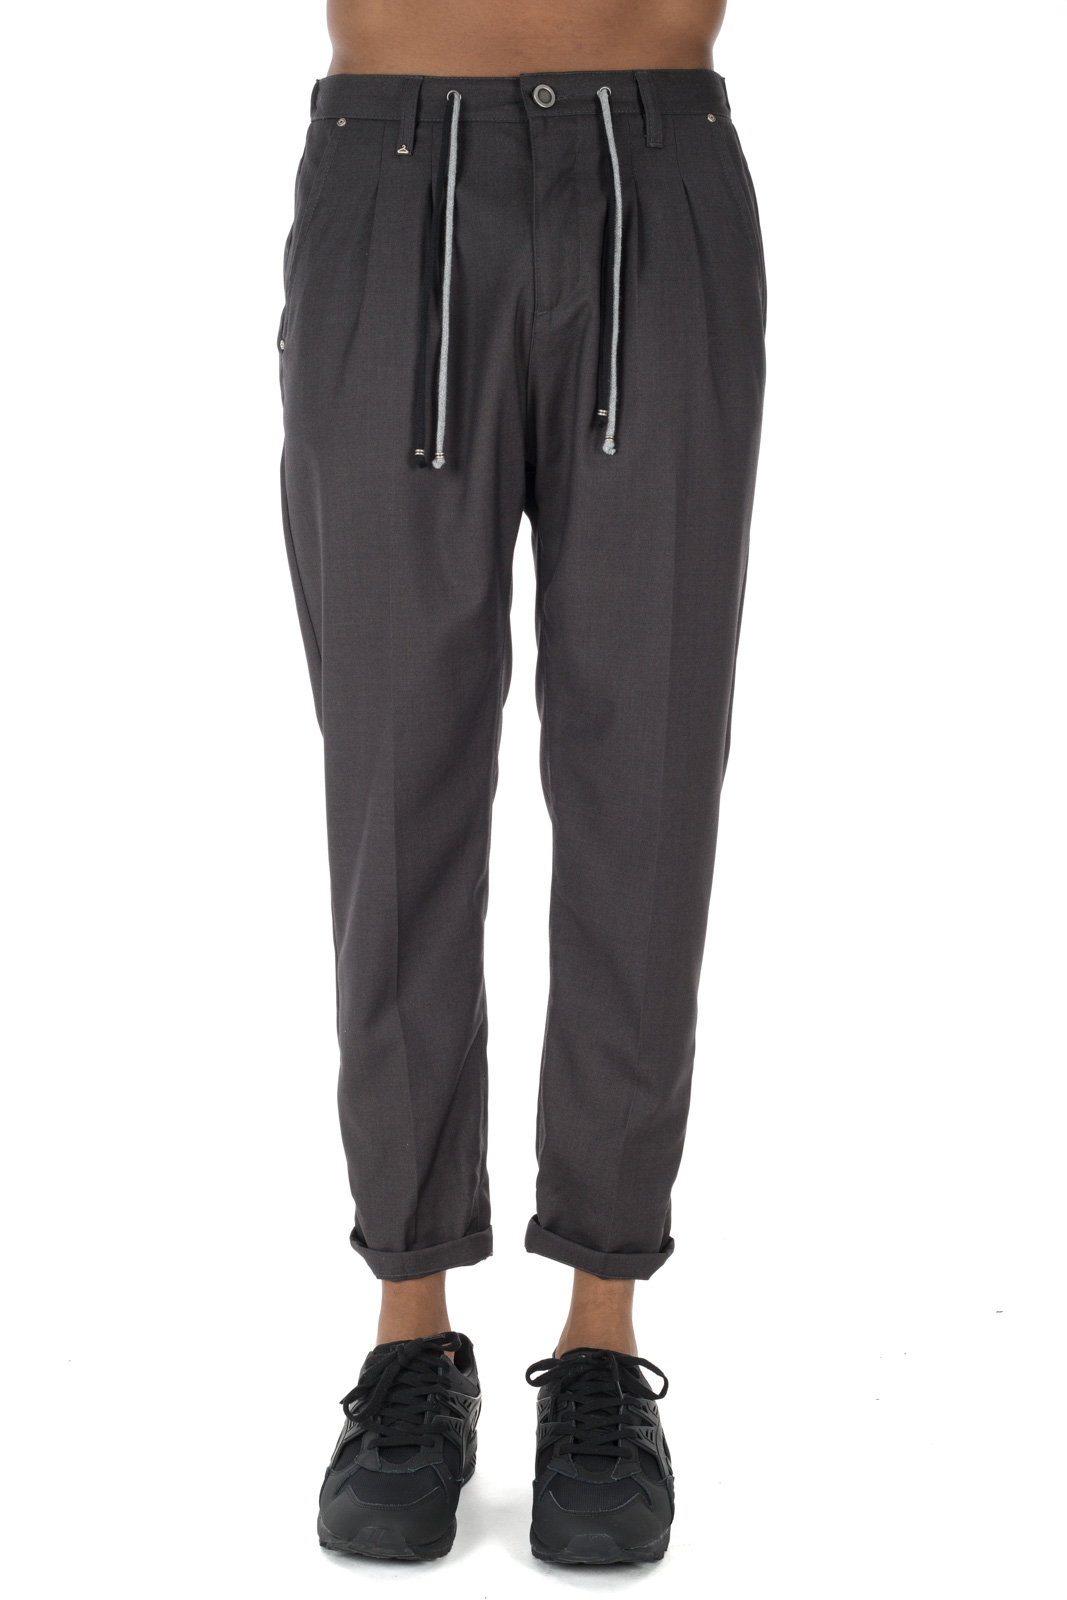 Berna - Gray trousers with contrasting laces